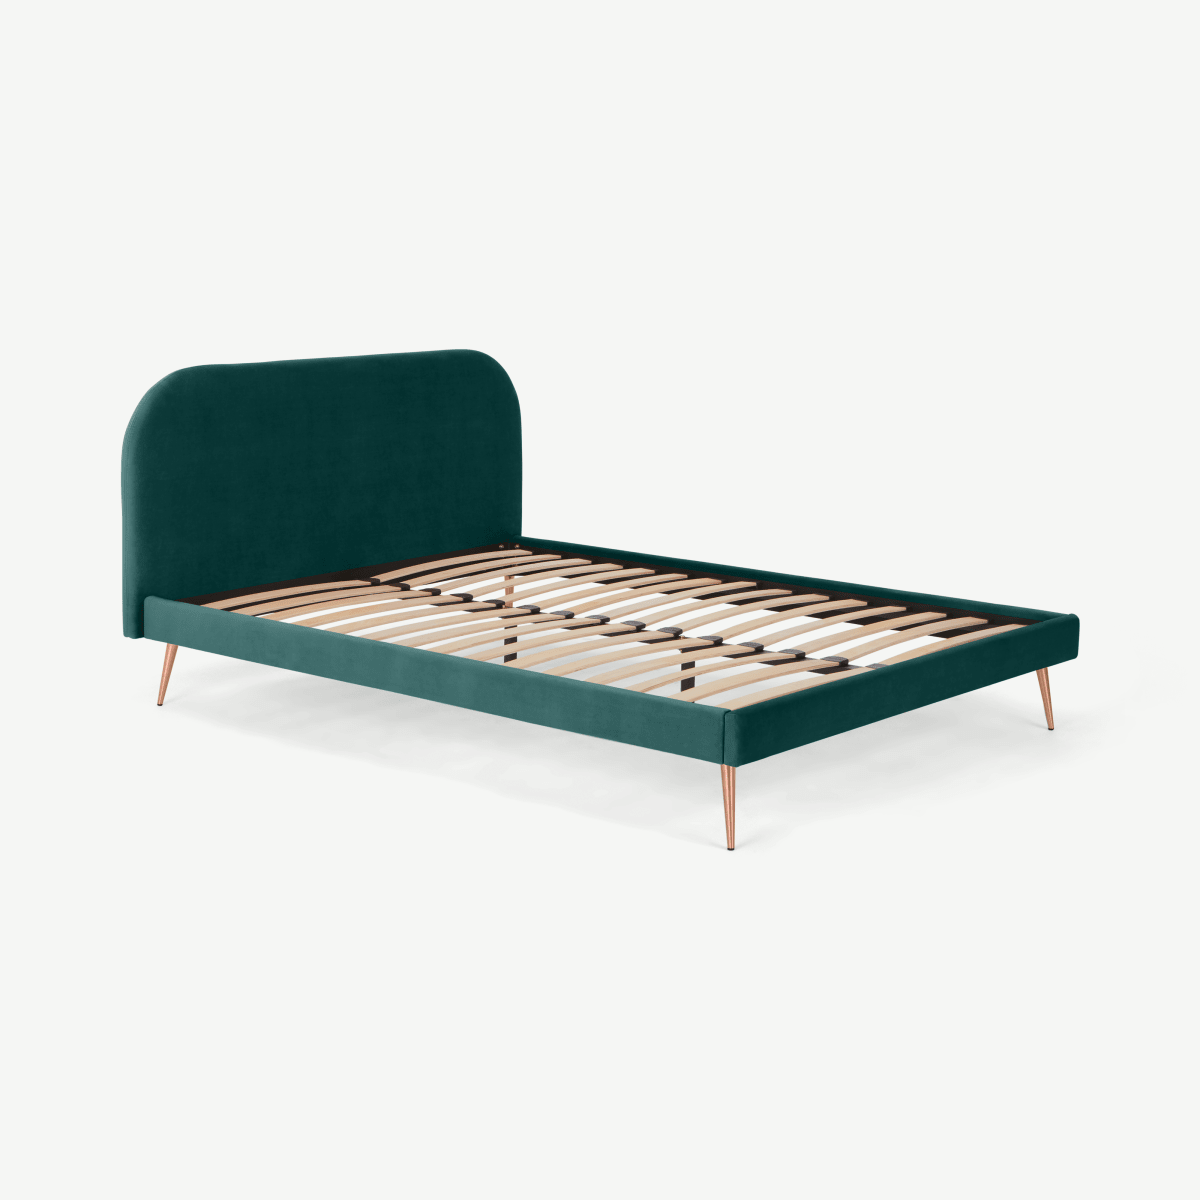 Eulia King Size Bed, Seafoam Blue Velvet & Copper Legs